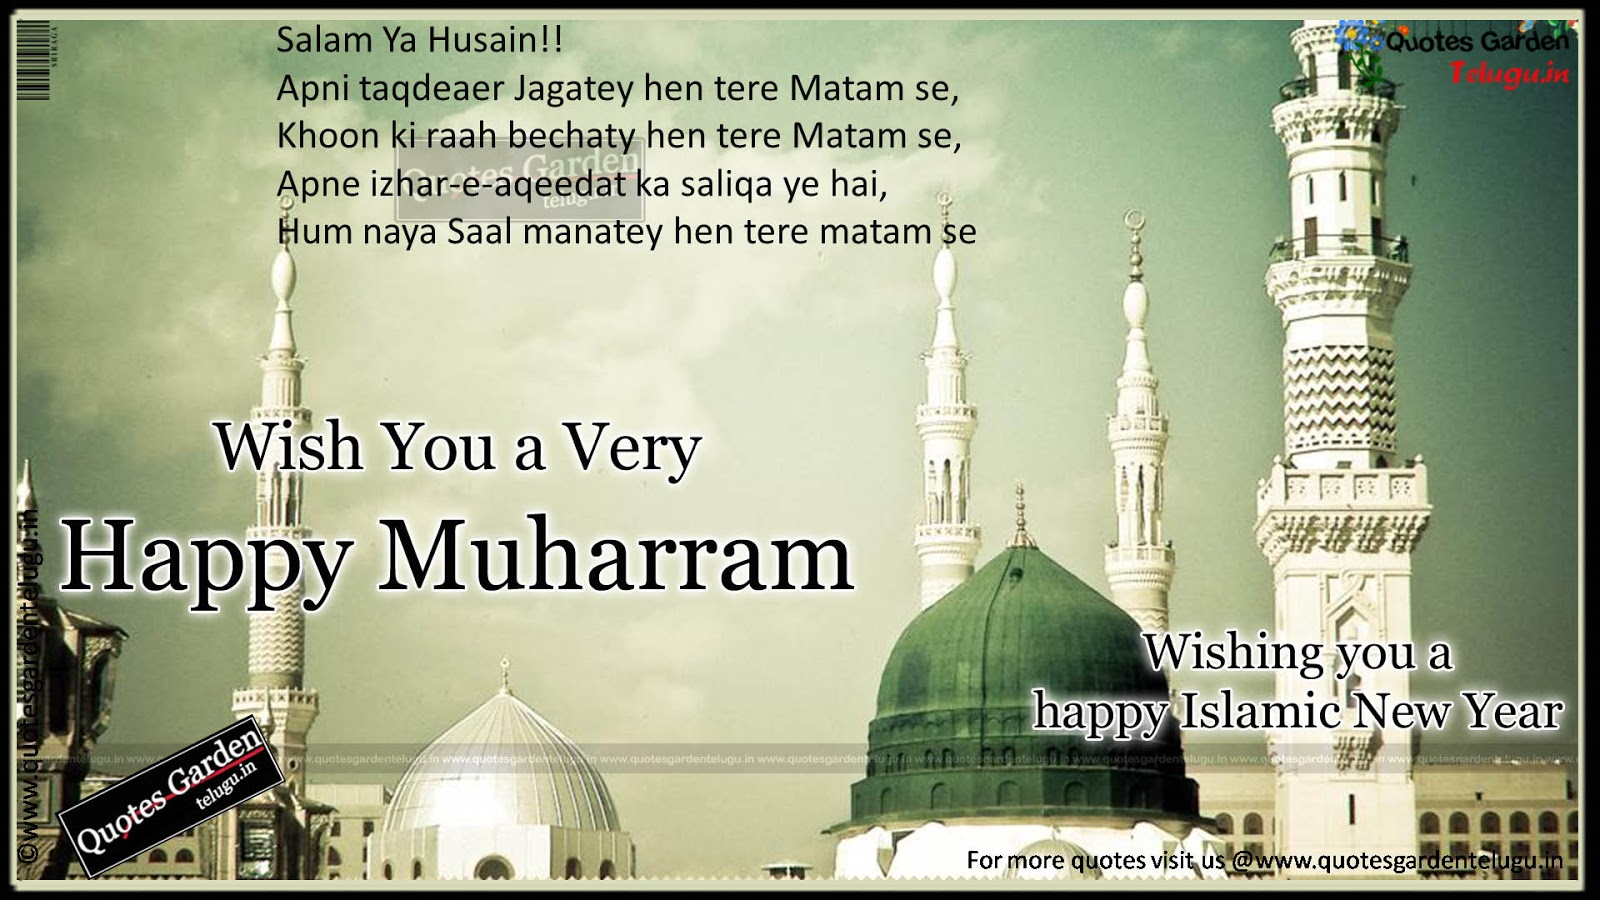 Wish You A Very Happy Muharram Wishing You A Happy Islamic New Year